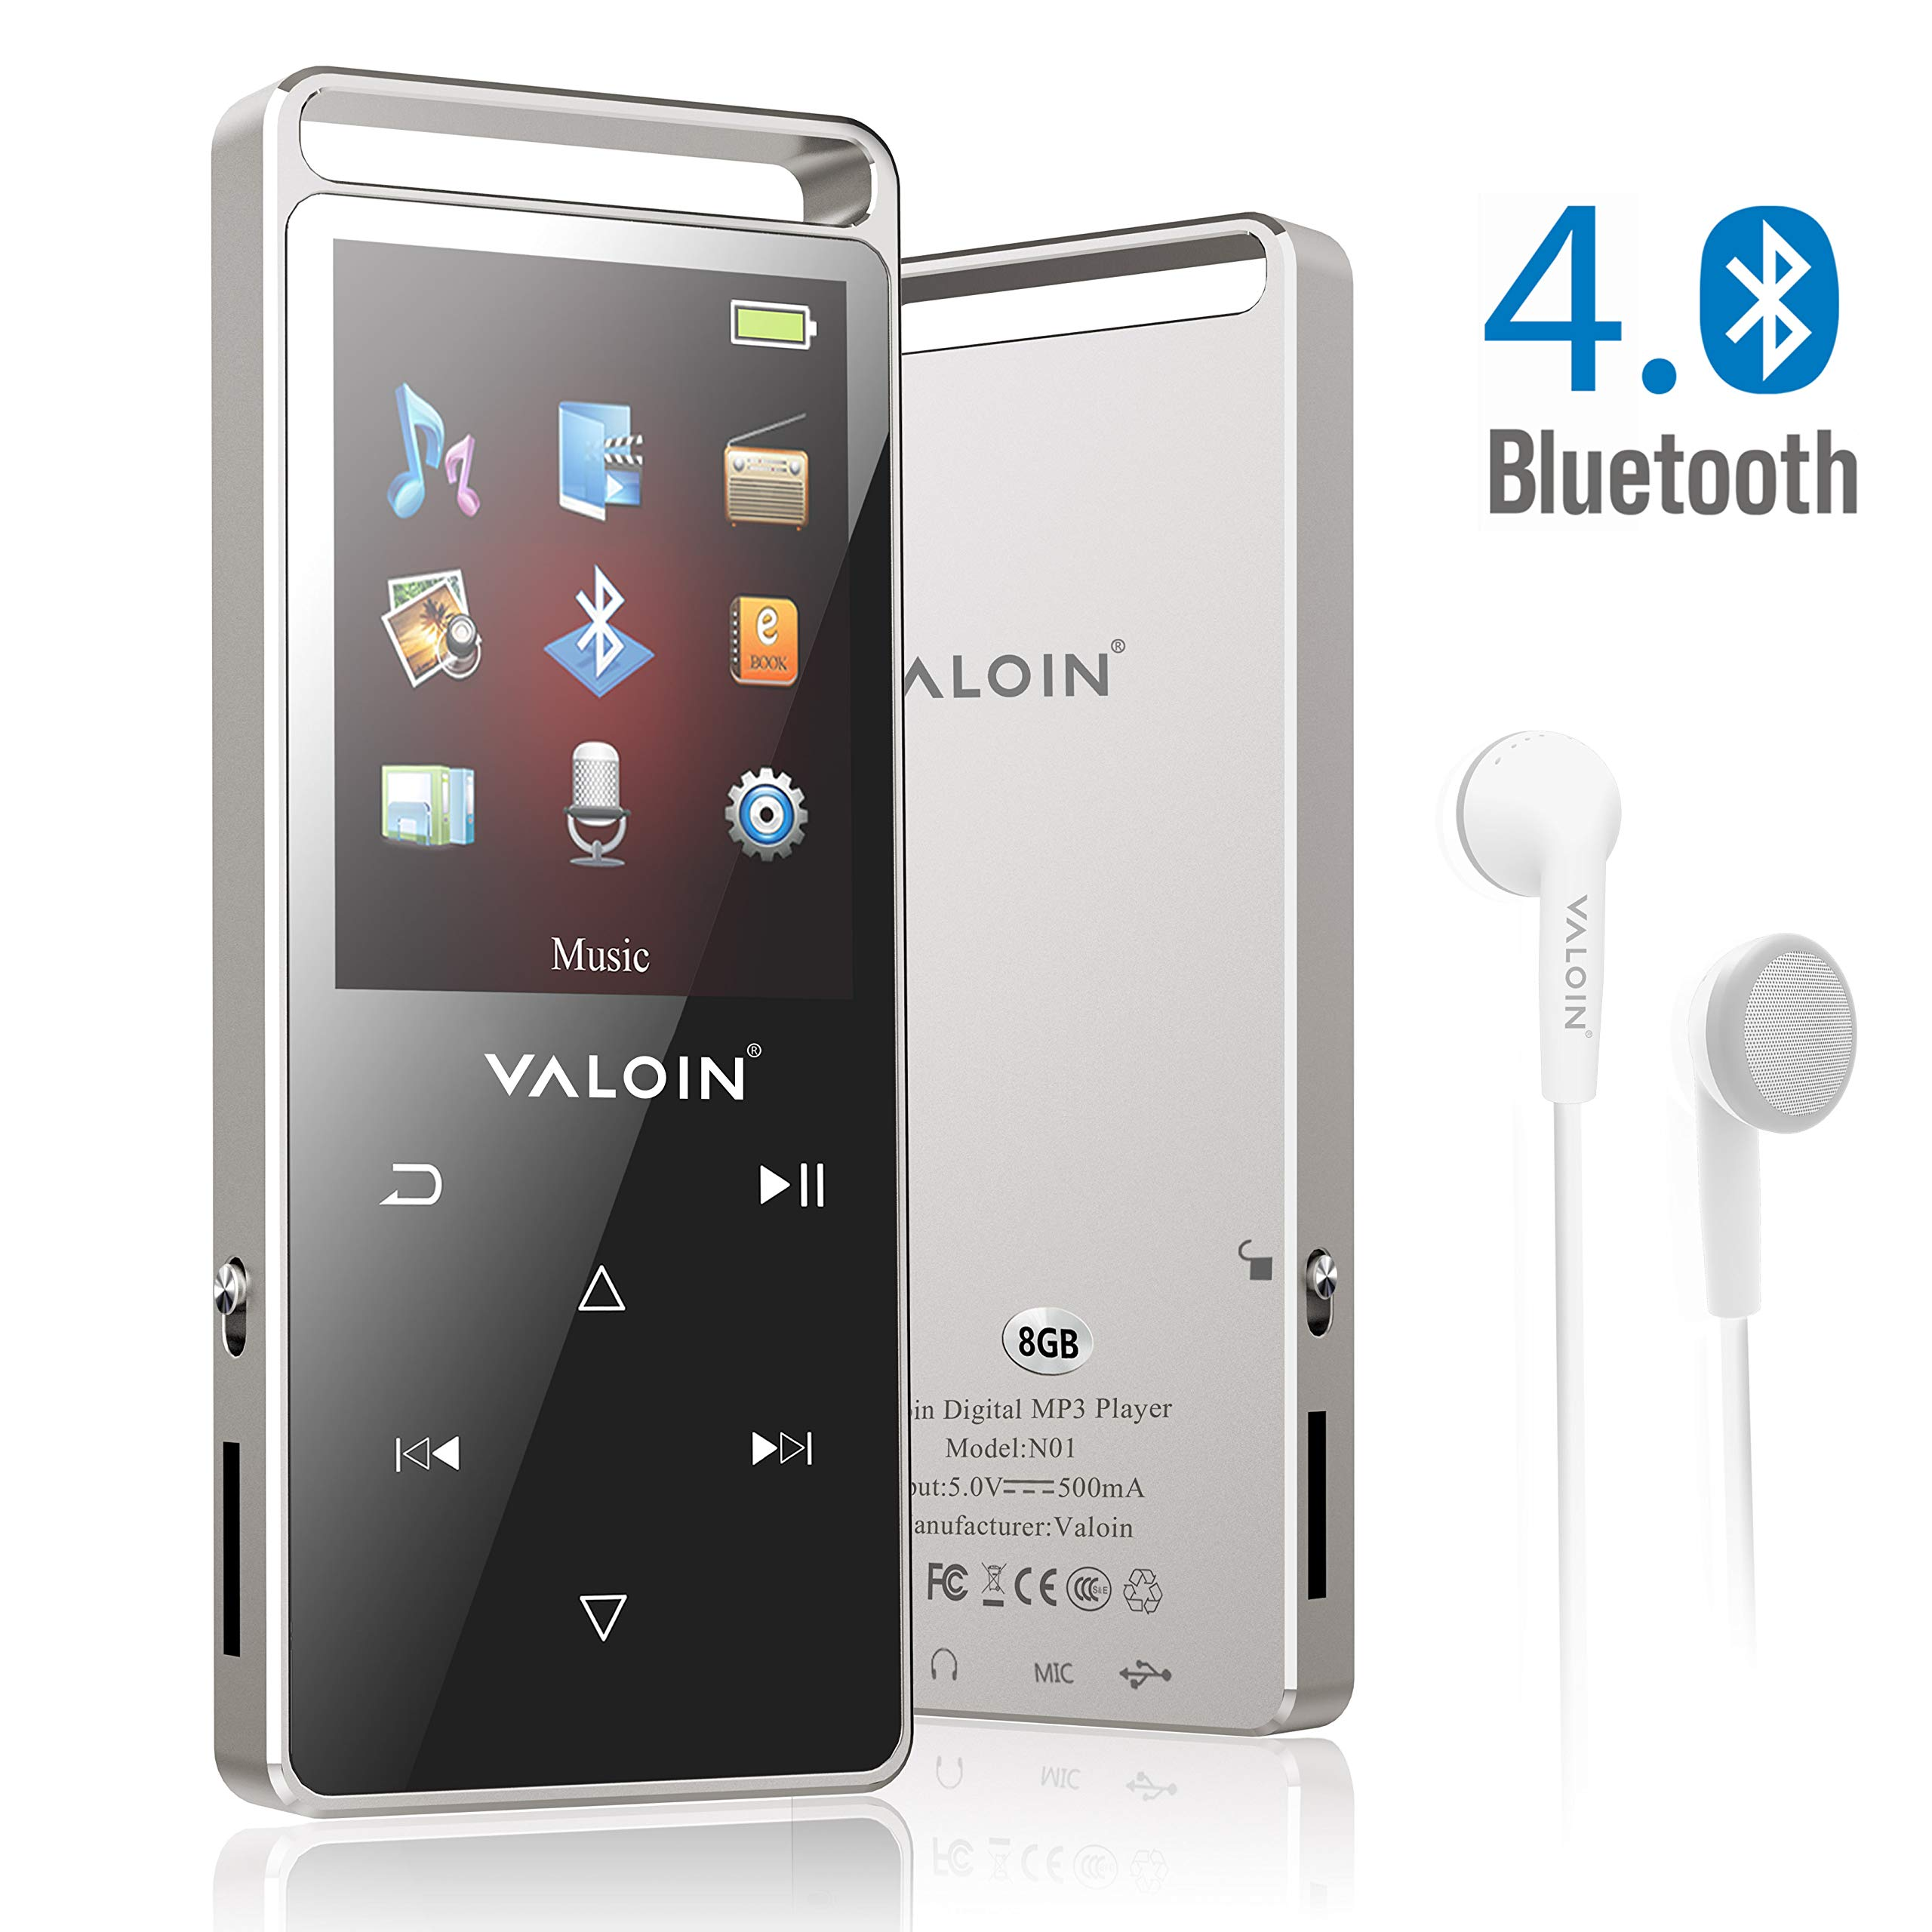 MP3 Music Player with Bluetooth 4.0, Valoin 8GB Portable Lossless Digital Audio Player with FM Radio/Voice Recorder for Walking Running, Metal Shell Touch Buttons (Support up to 128GB)